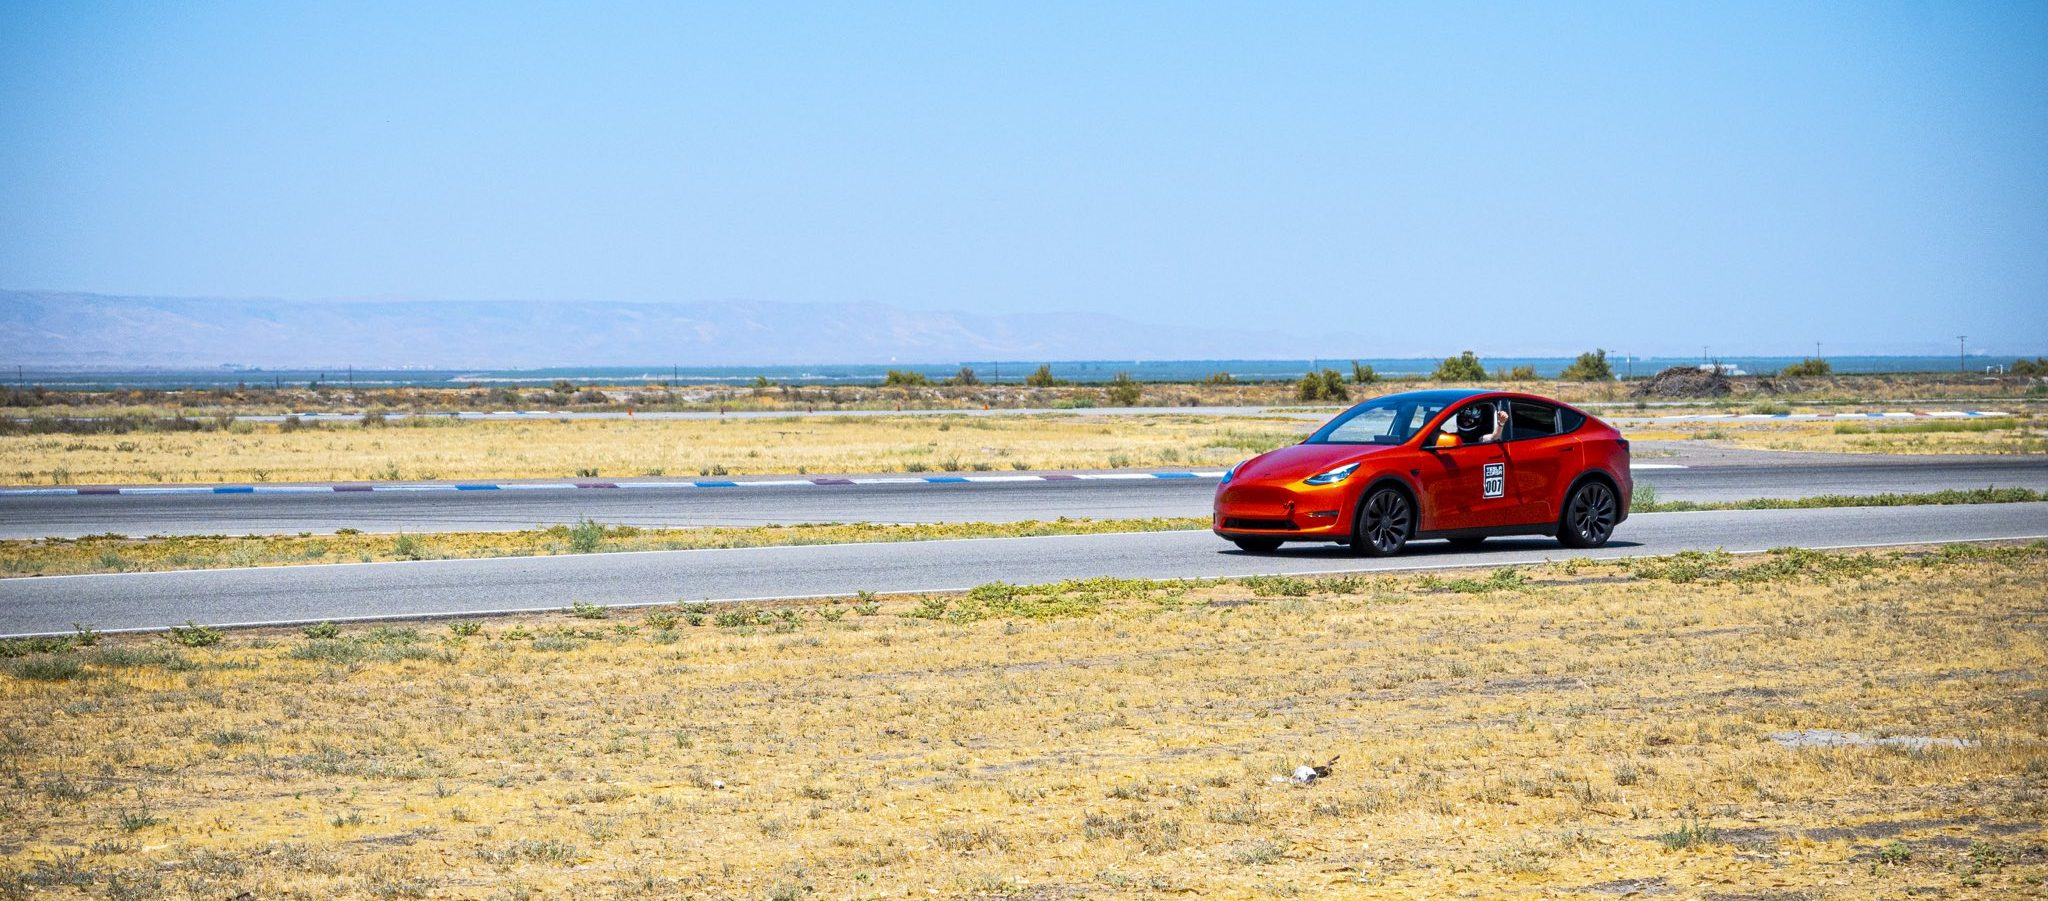 Kilowatts Buttonwillow